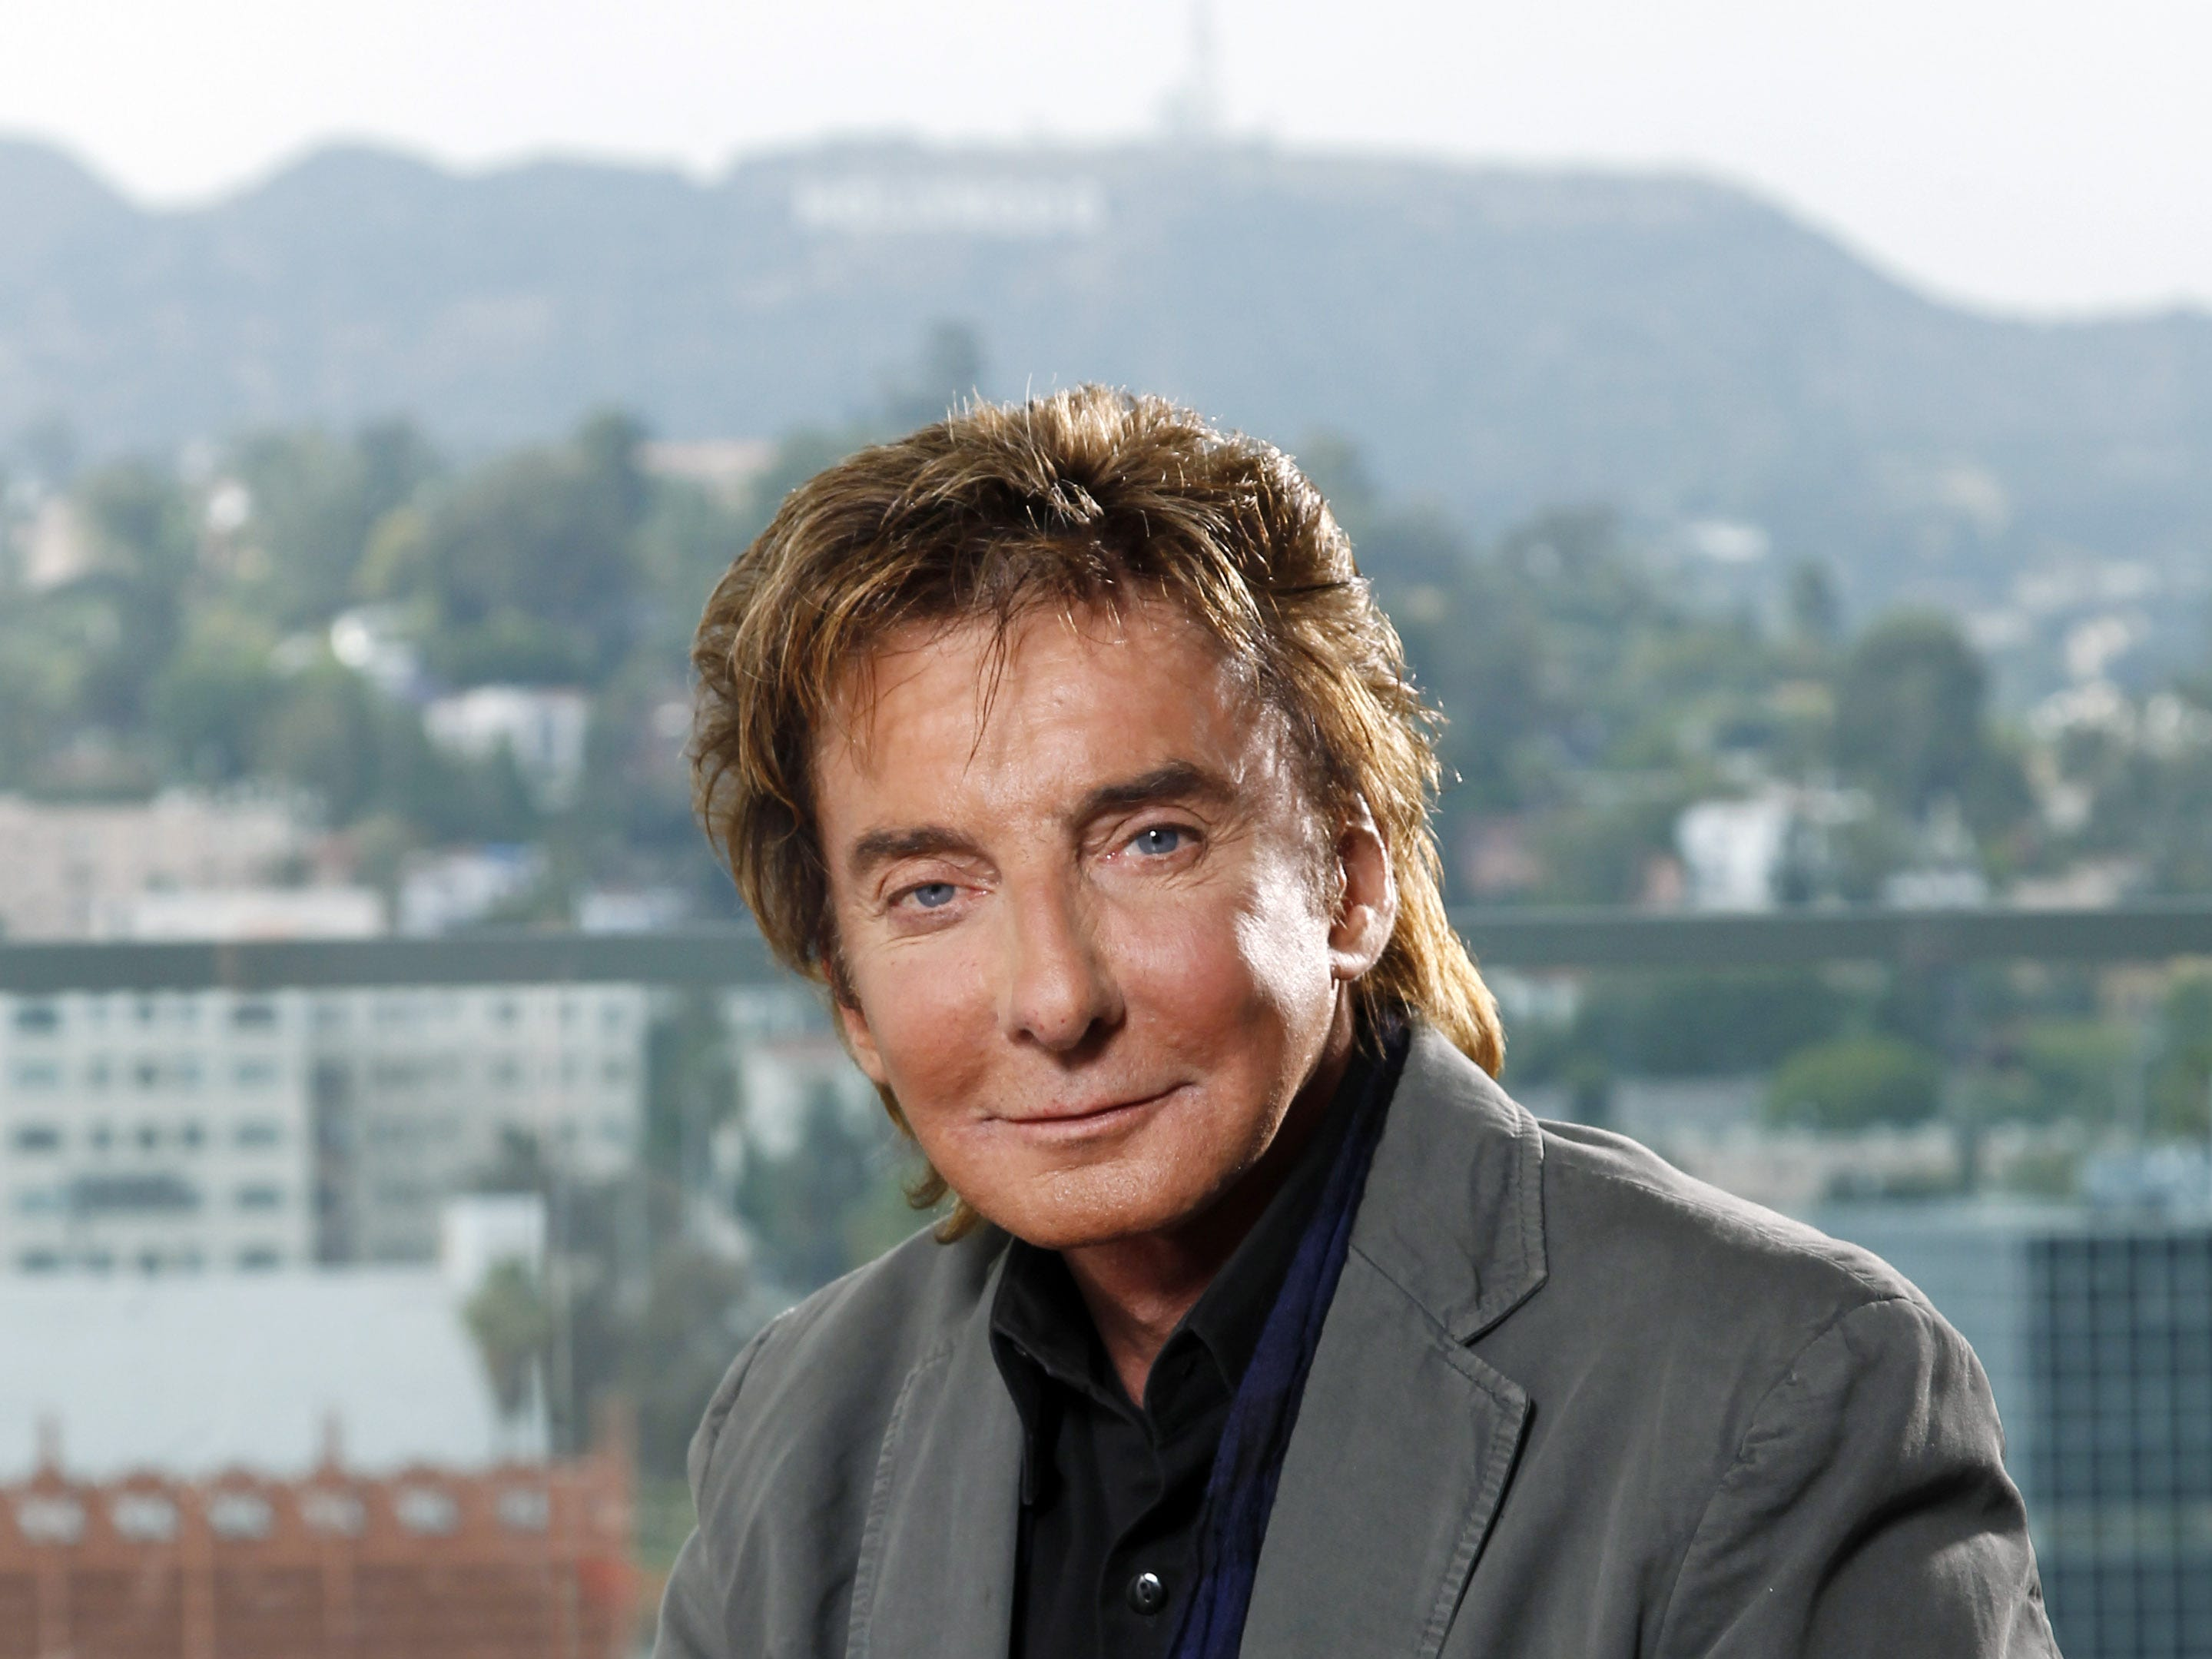 Barry Manilow poses for a portrait in Los Angeles on June 8, 2011.